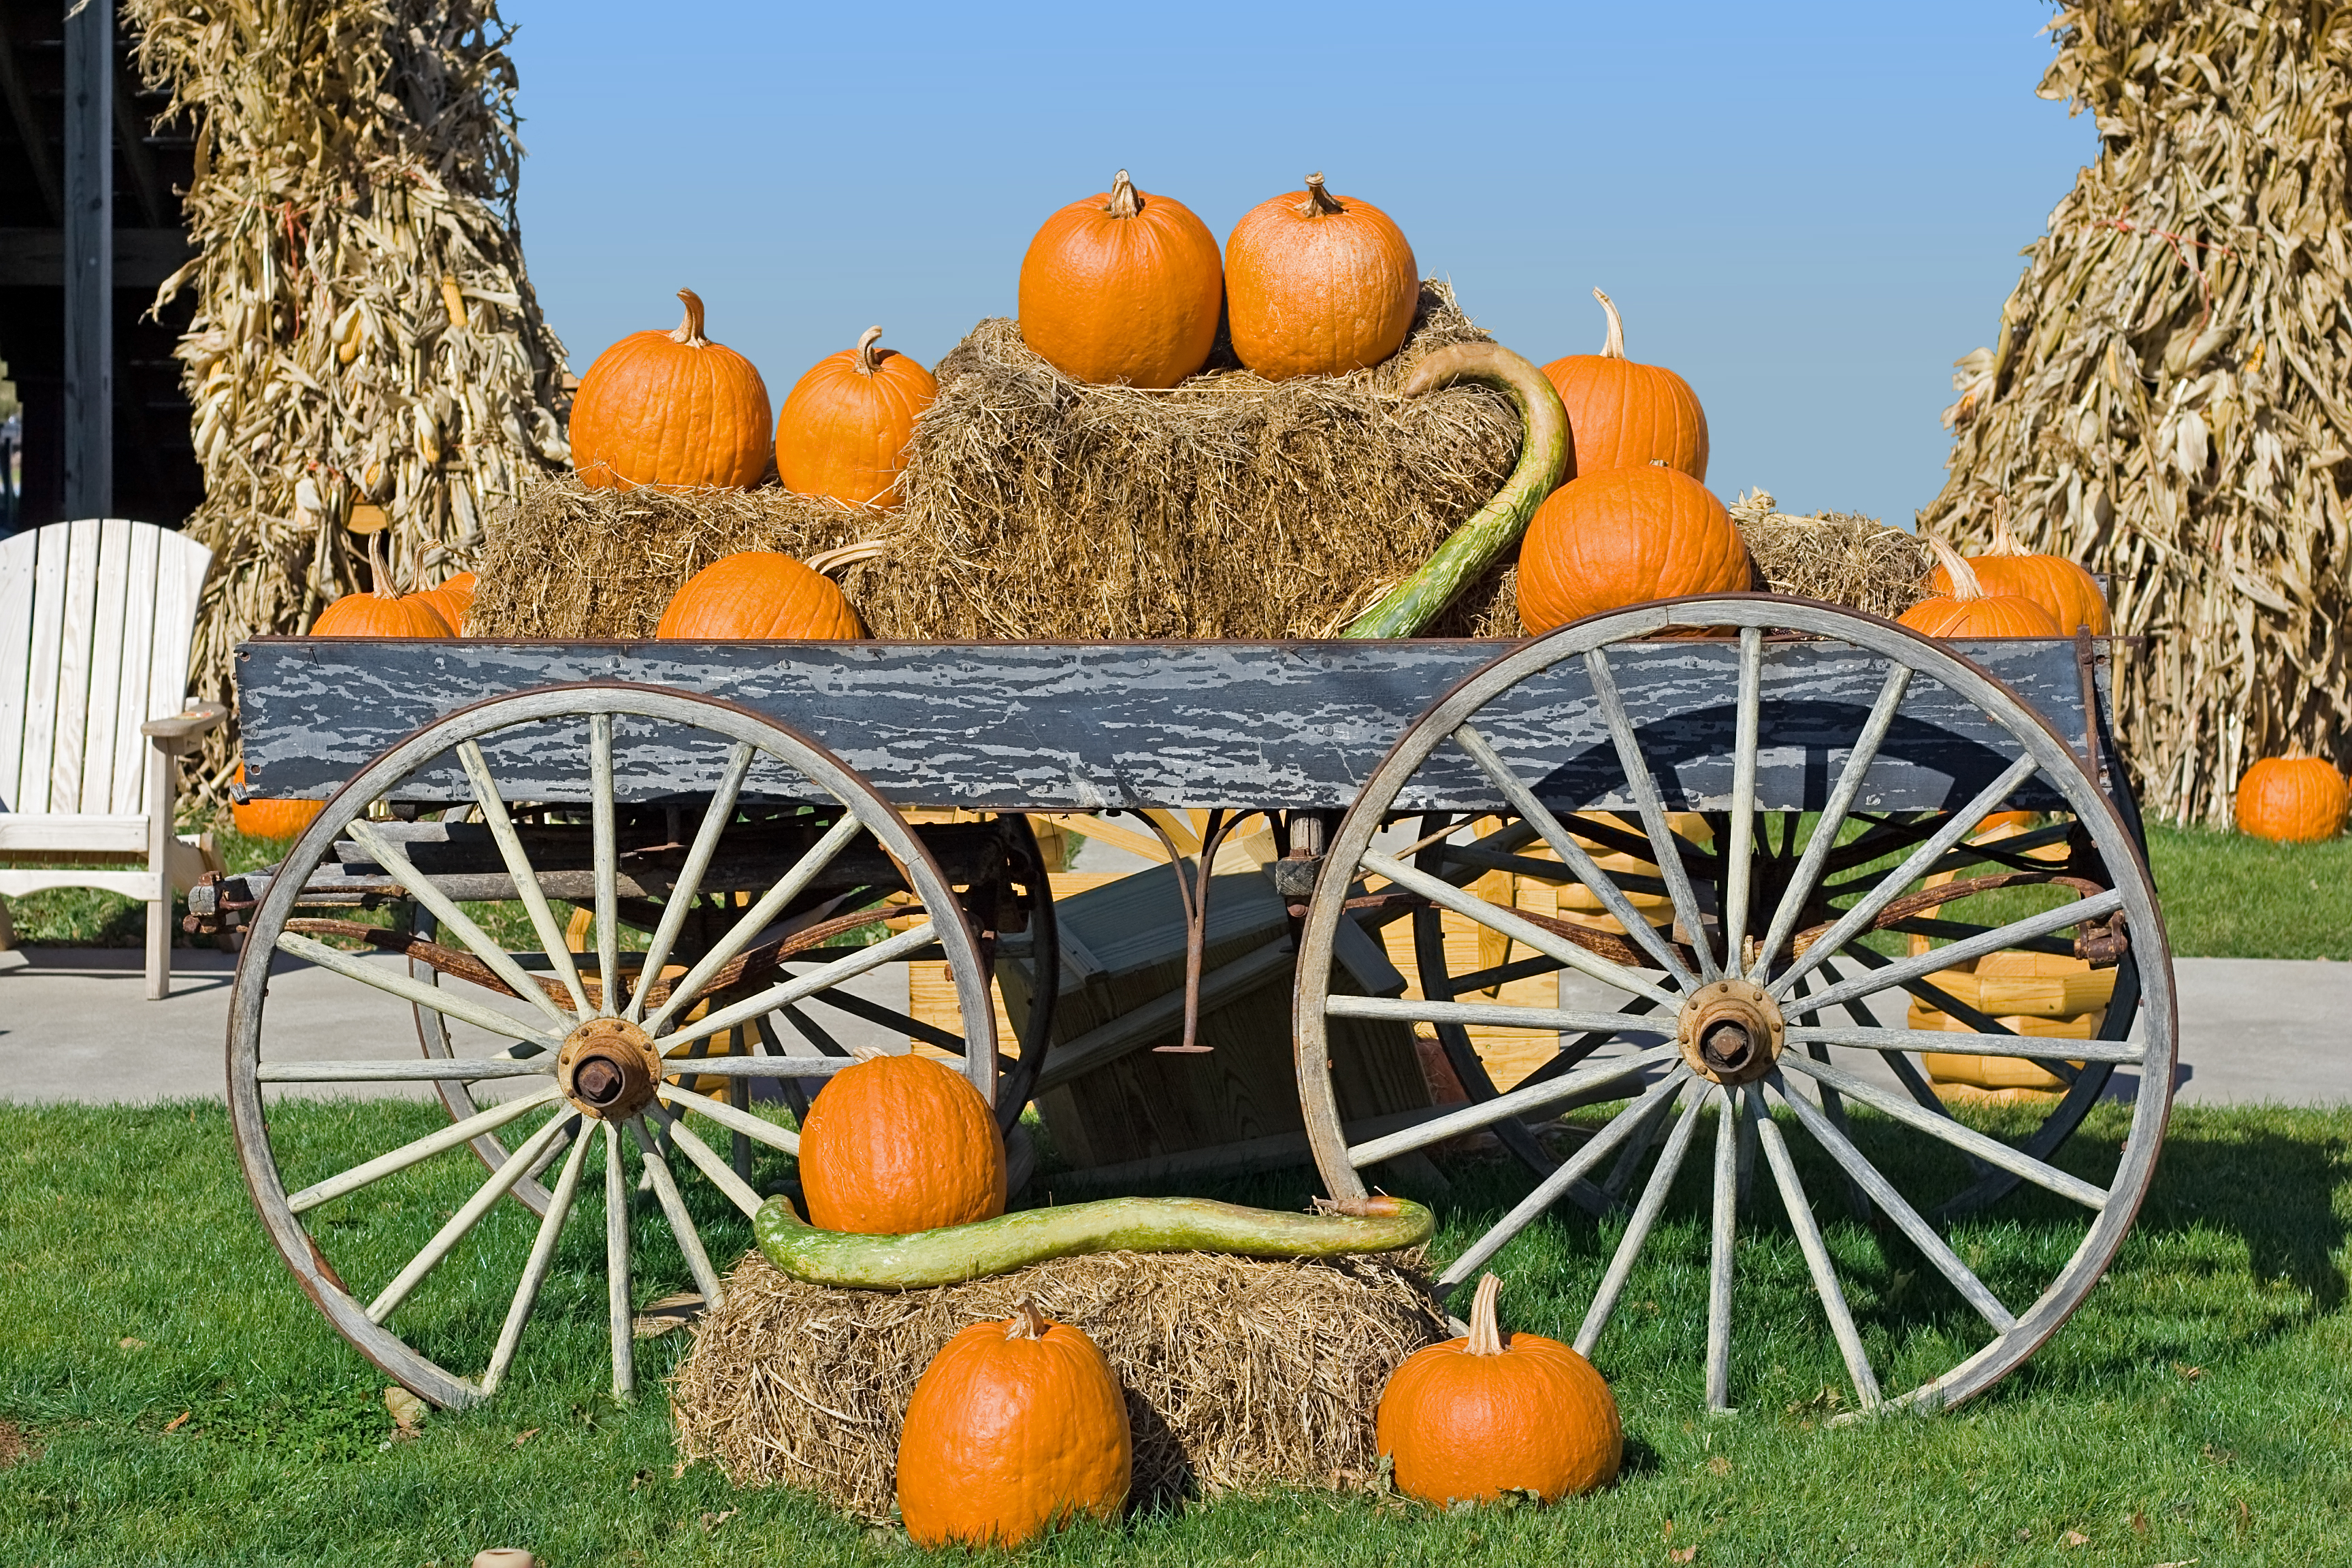 A pile of pumpkins on hay bales sit on a wagon with large wheels in a field.